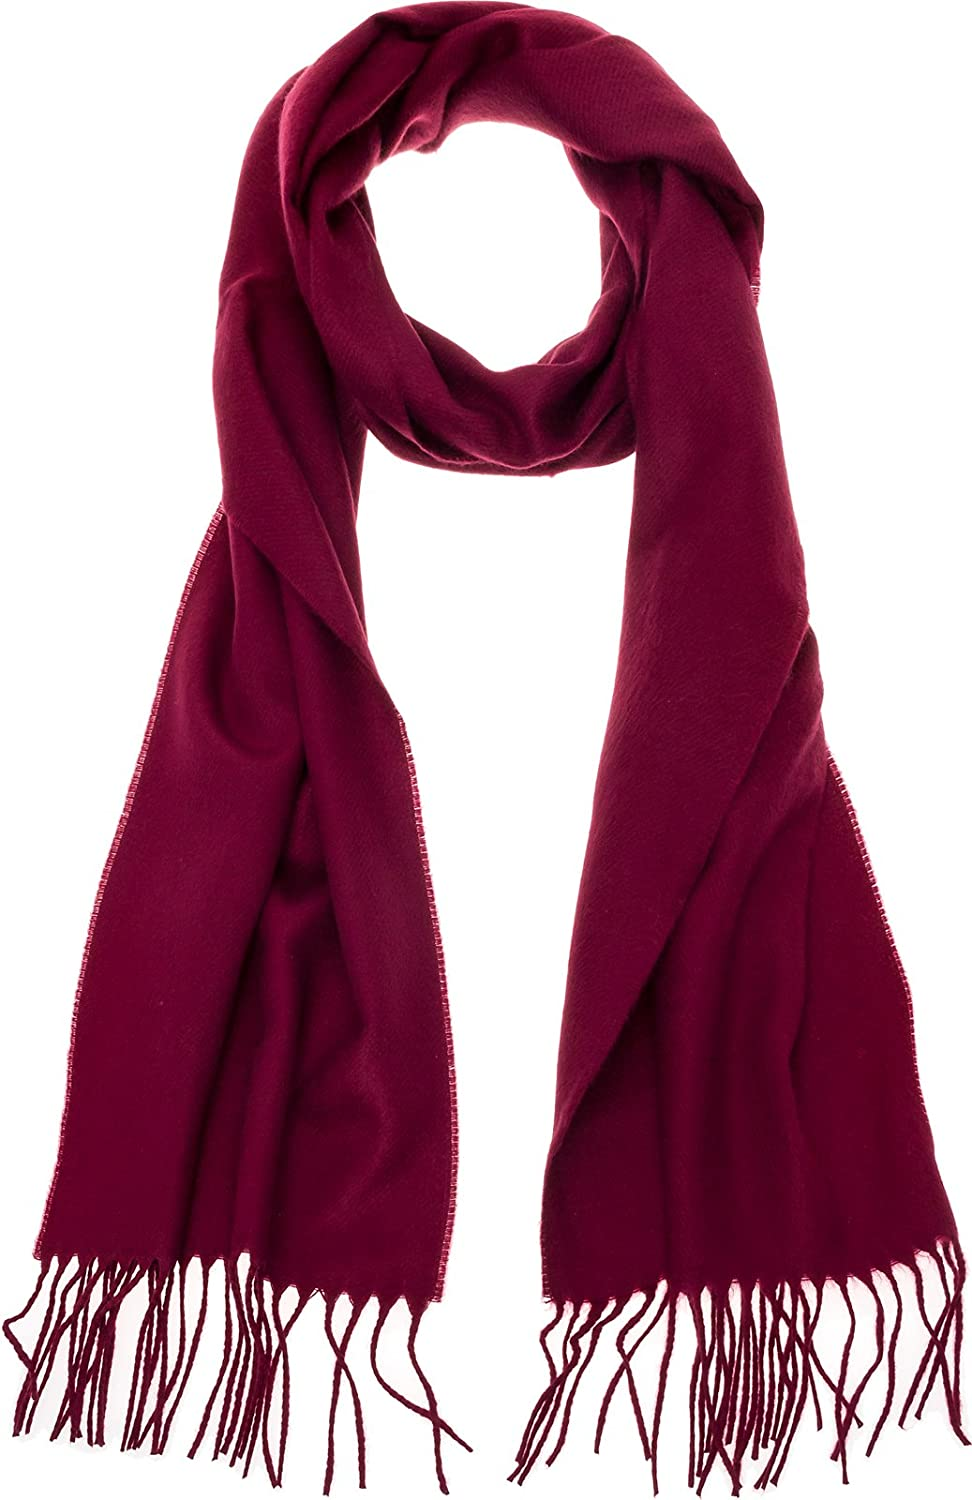 100% Cashmere Wool Scarf  Super Soft 12  x 64.5  Shawl Wrap w Gift Box for Women and Men